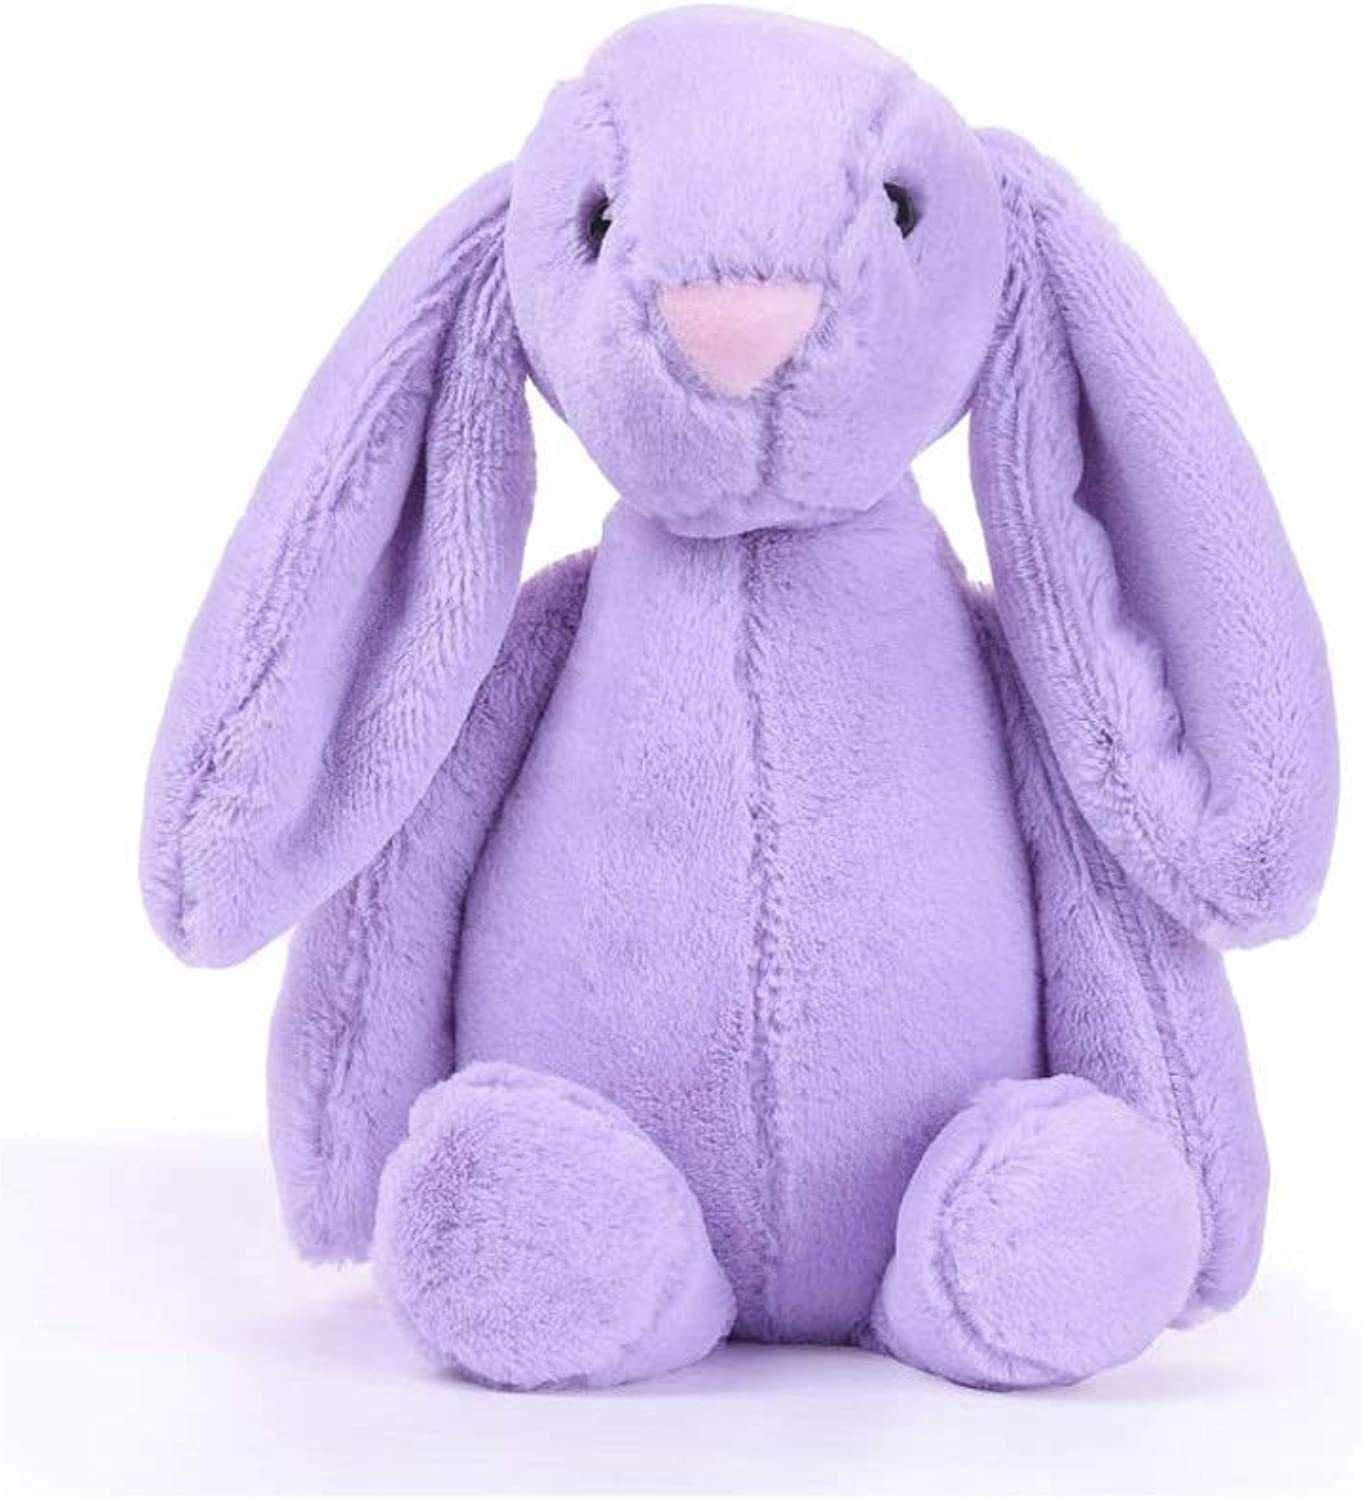 Bonnie Rabbit Plush Toy,, Available in A Variety of colors, Soft Plush Fabric, Filled with Environmentally Friendly PP Cotton. ( color   Purple )